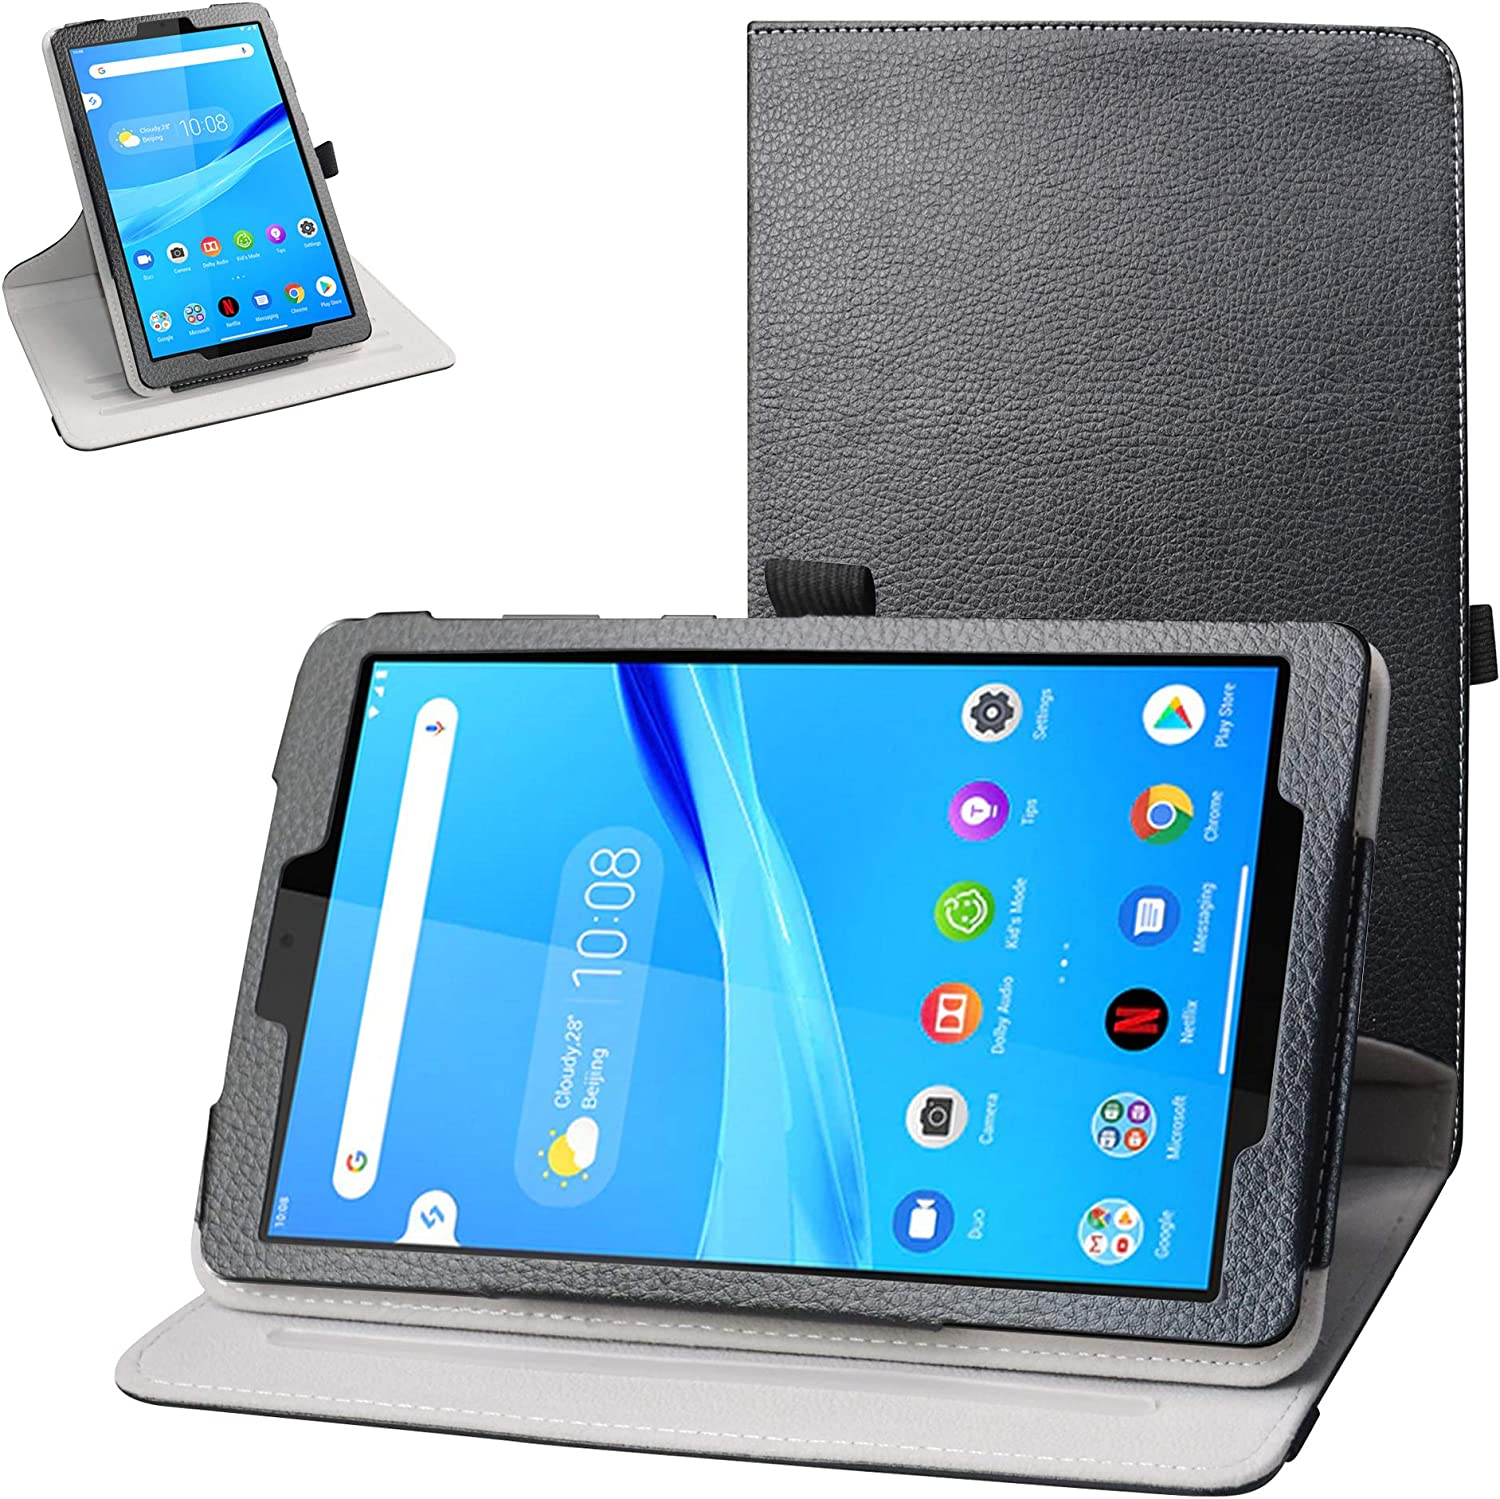 Bige for Lenovo Tab M8 FHD Rotating Case,360 Degree Rotary Stand with Cute Pattern Cover for 8